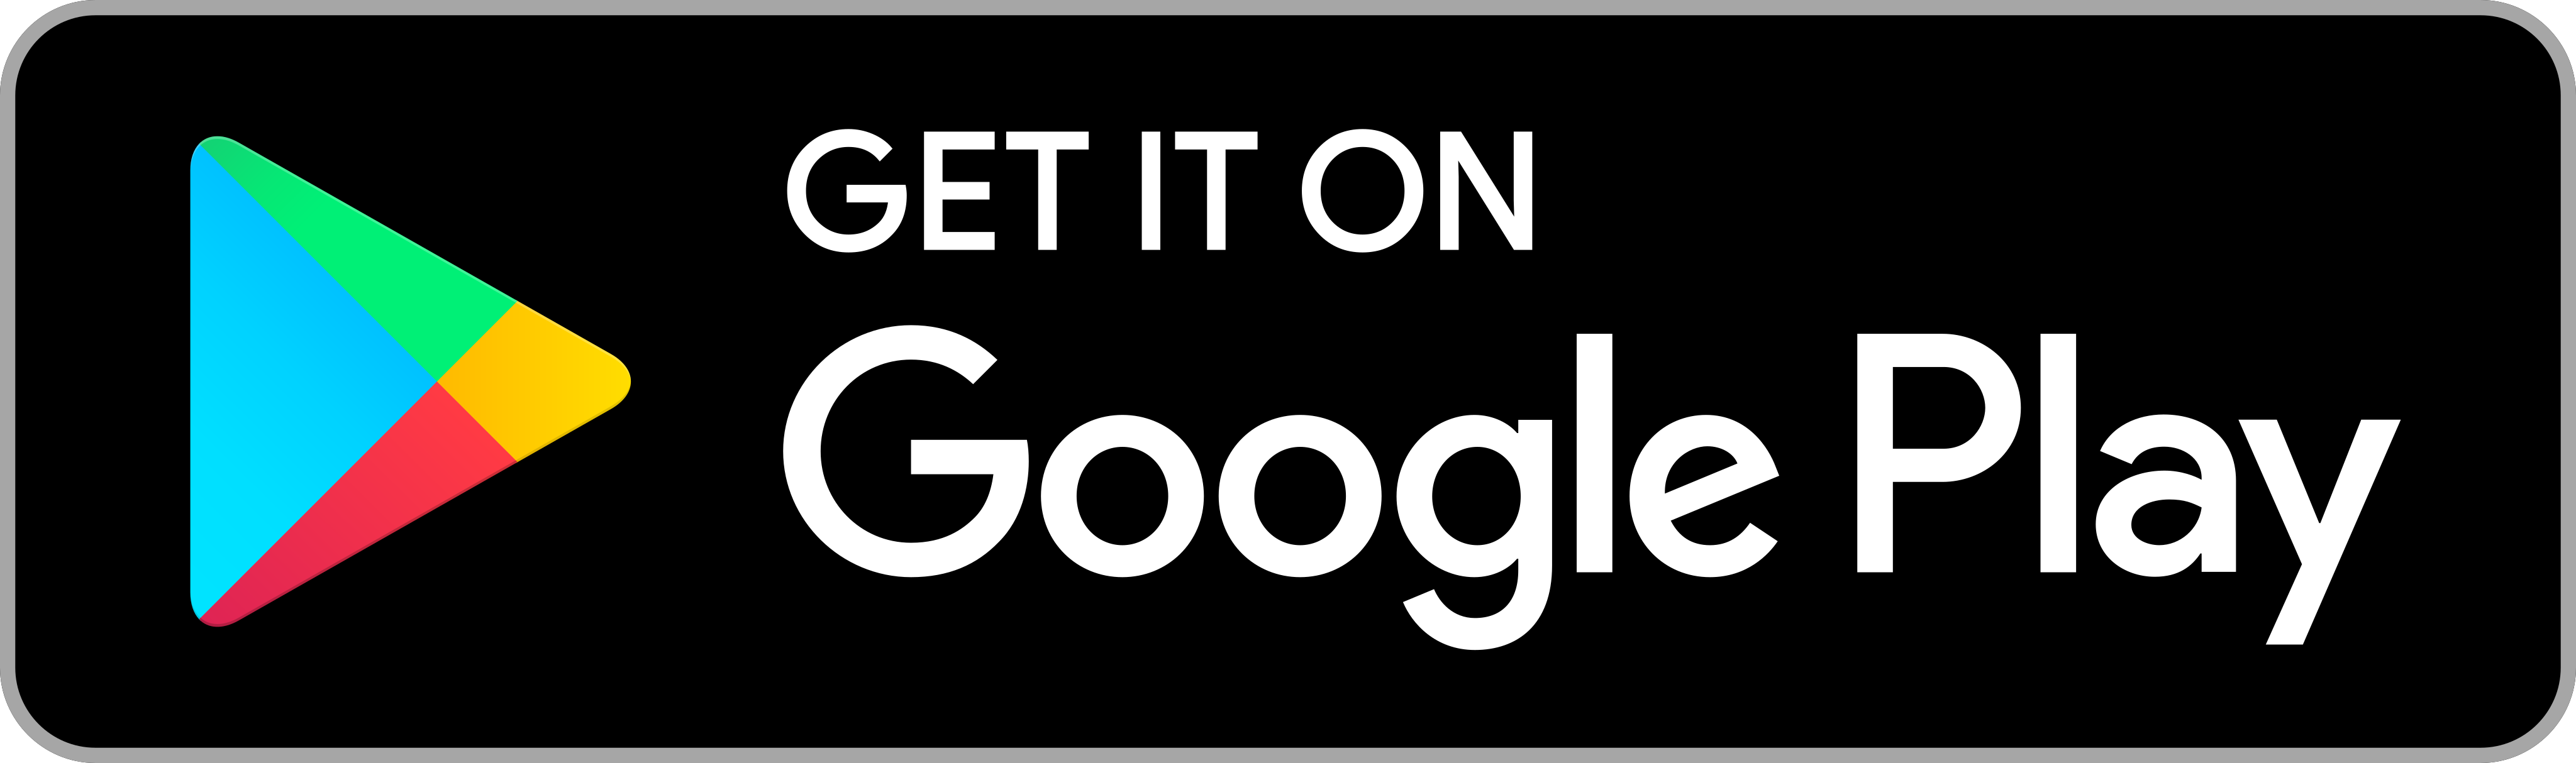 get it on google play badge - Get it on Google Play Badge